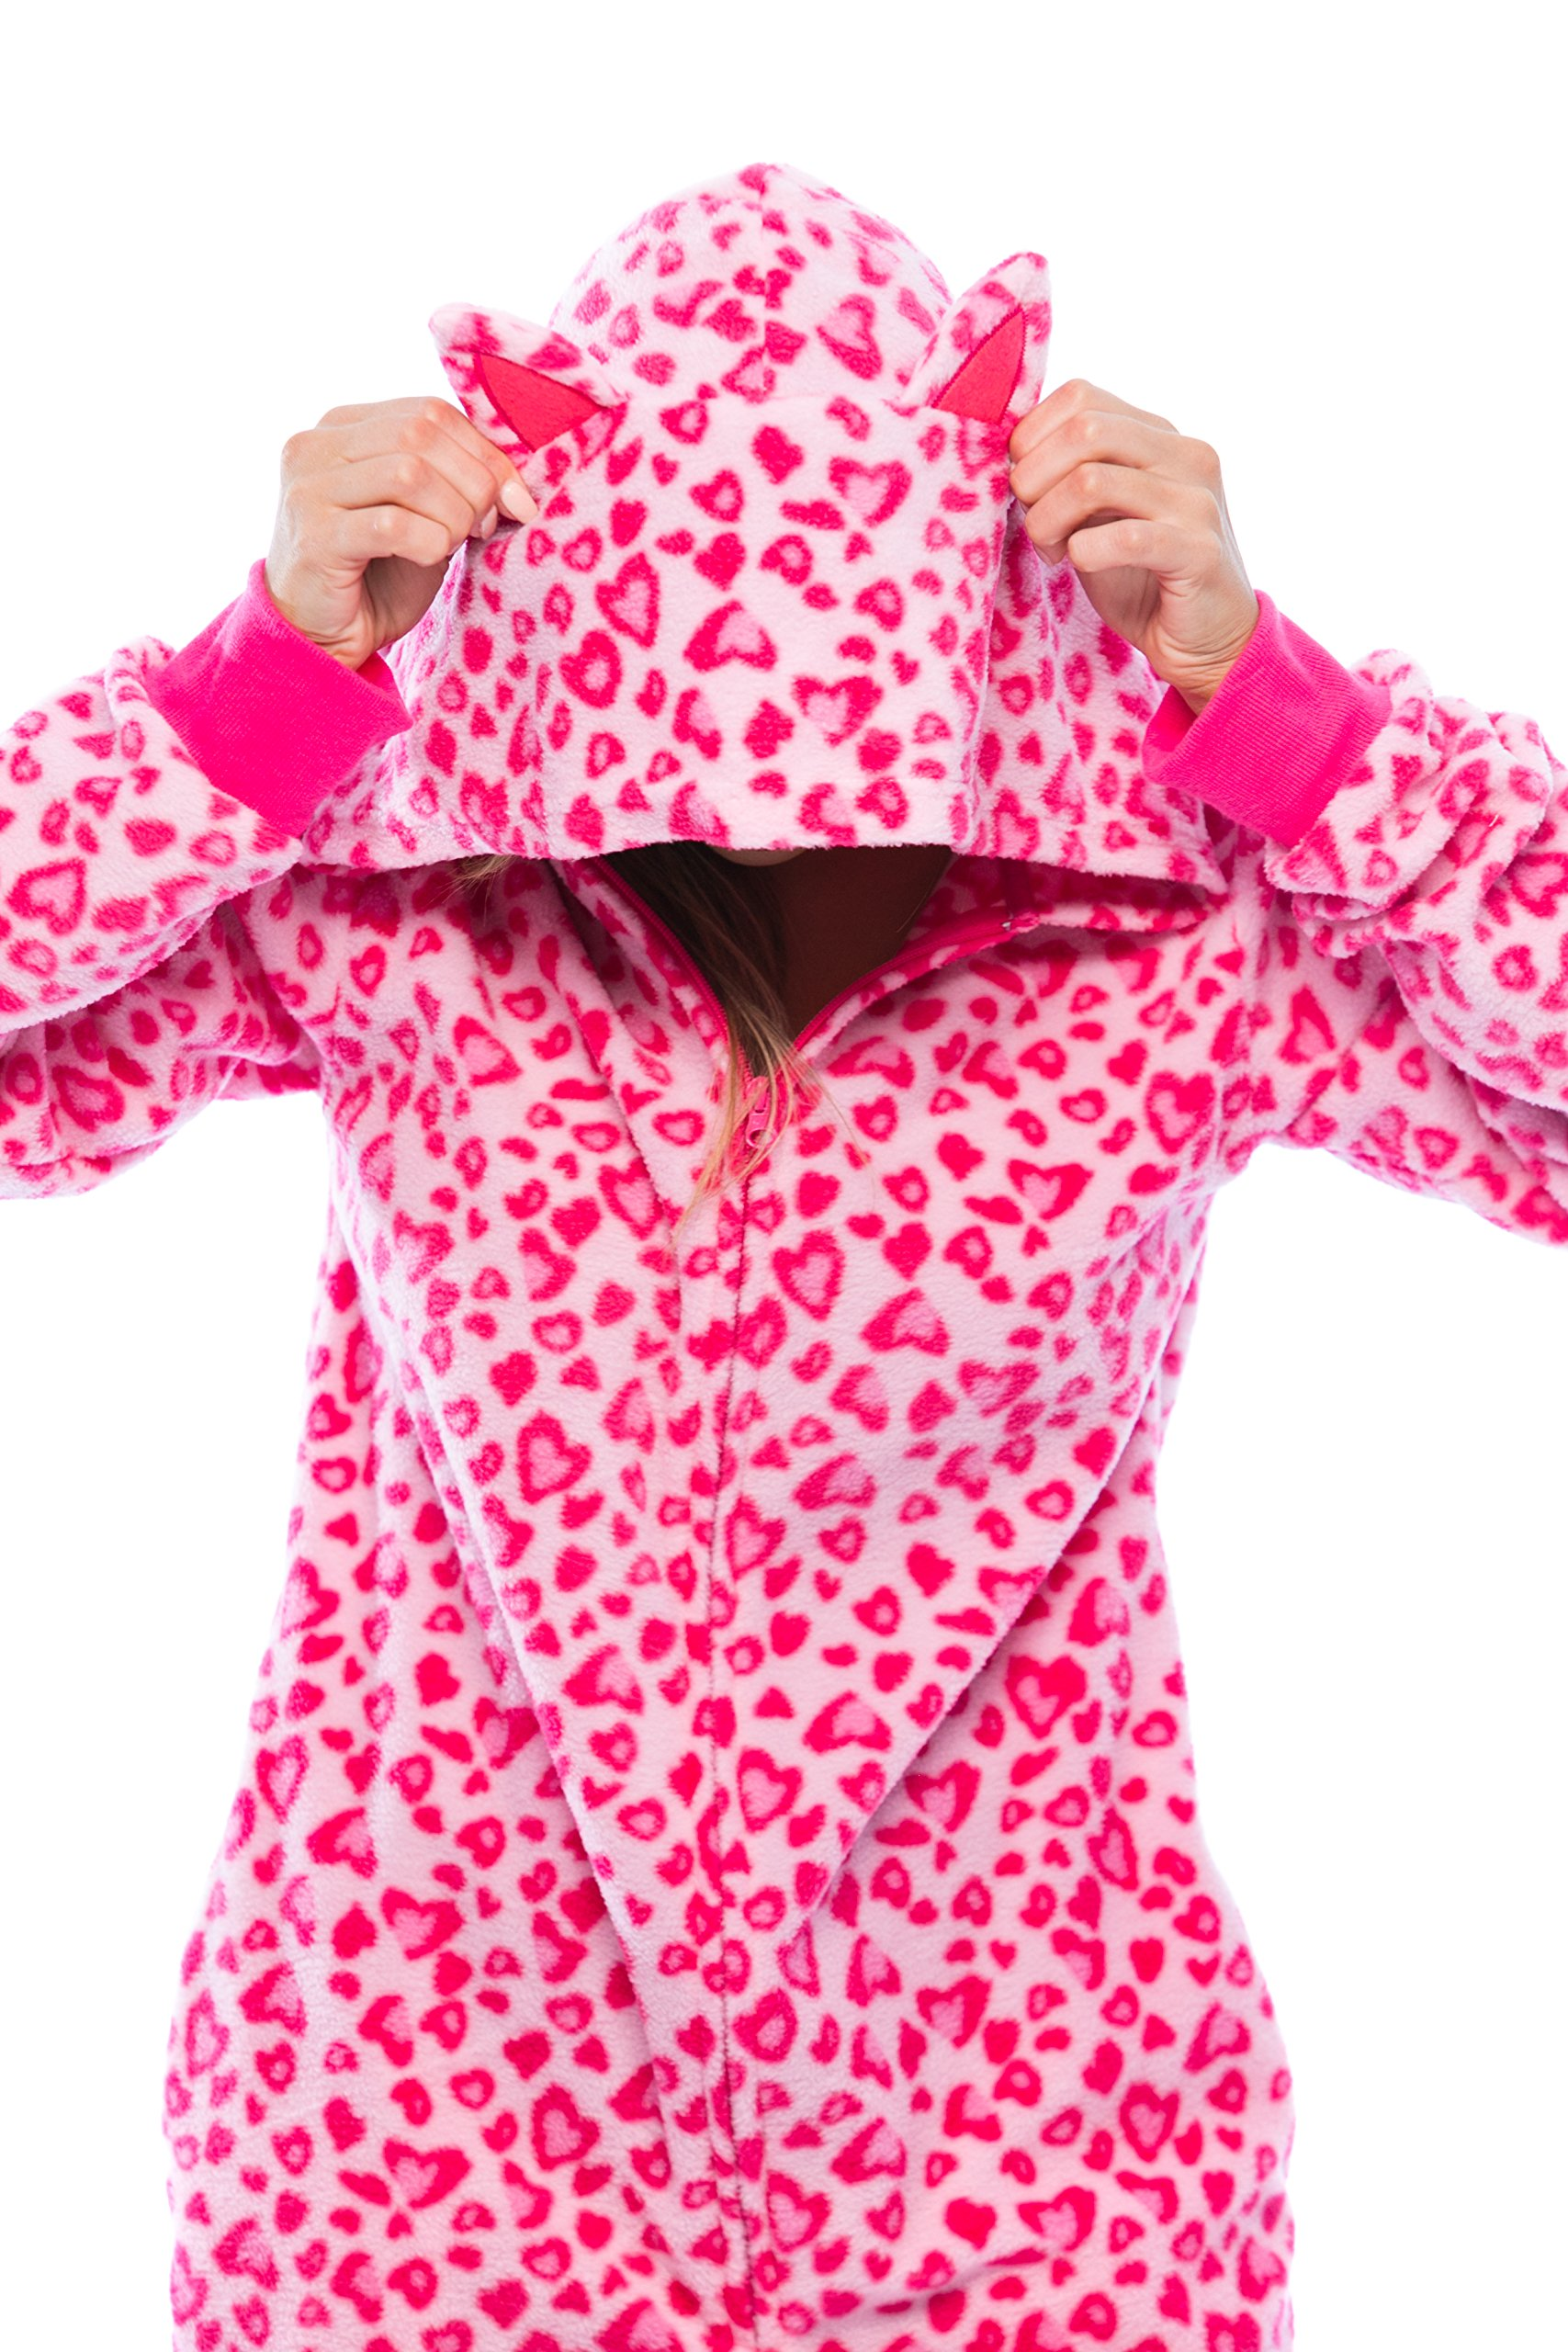 Just Love 6453-10215-M Adult Onesie With Animal Prints/Pajamas by Just Love (Image #5)